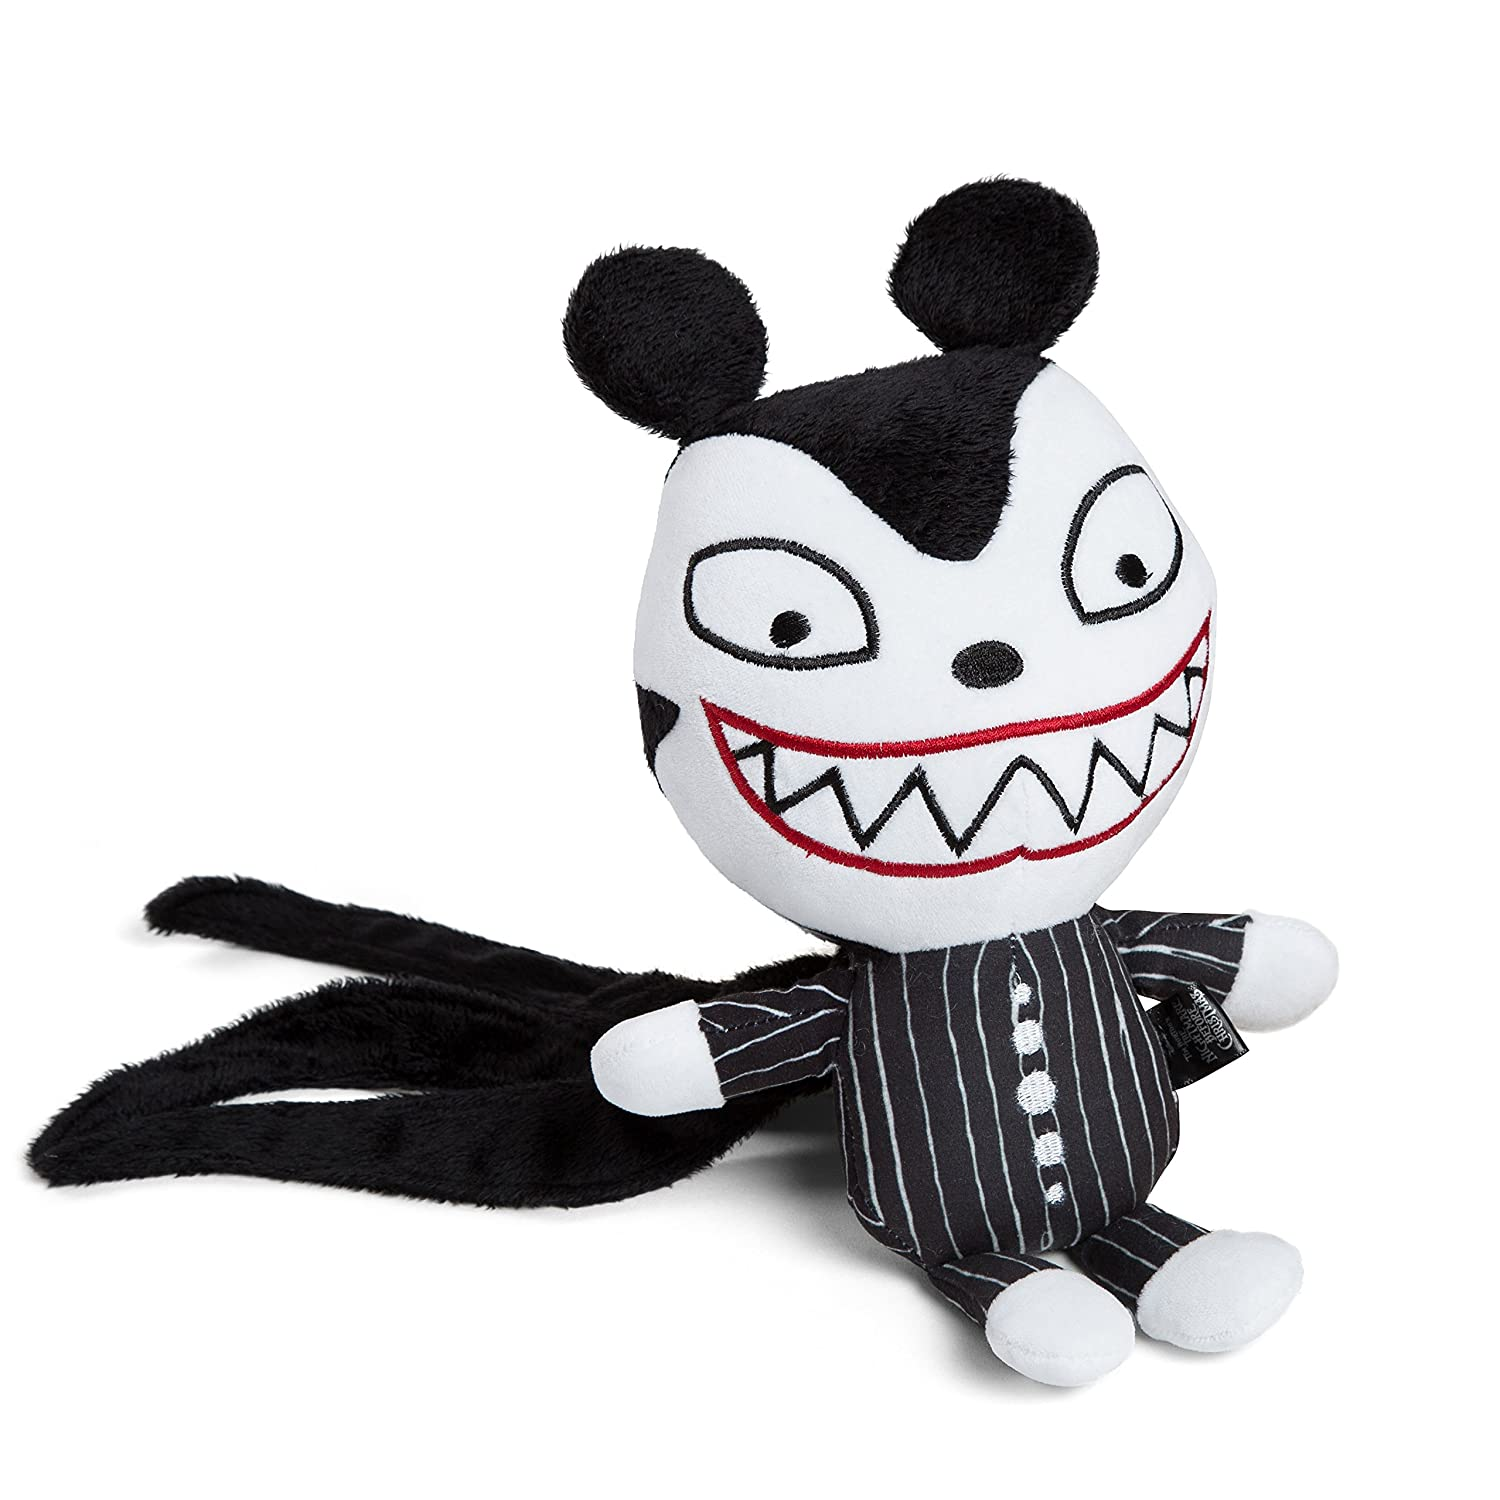 Pet Supplies : Disney Nightmare Before Christmas Scary Teddy Plush ...